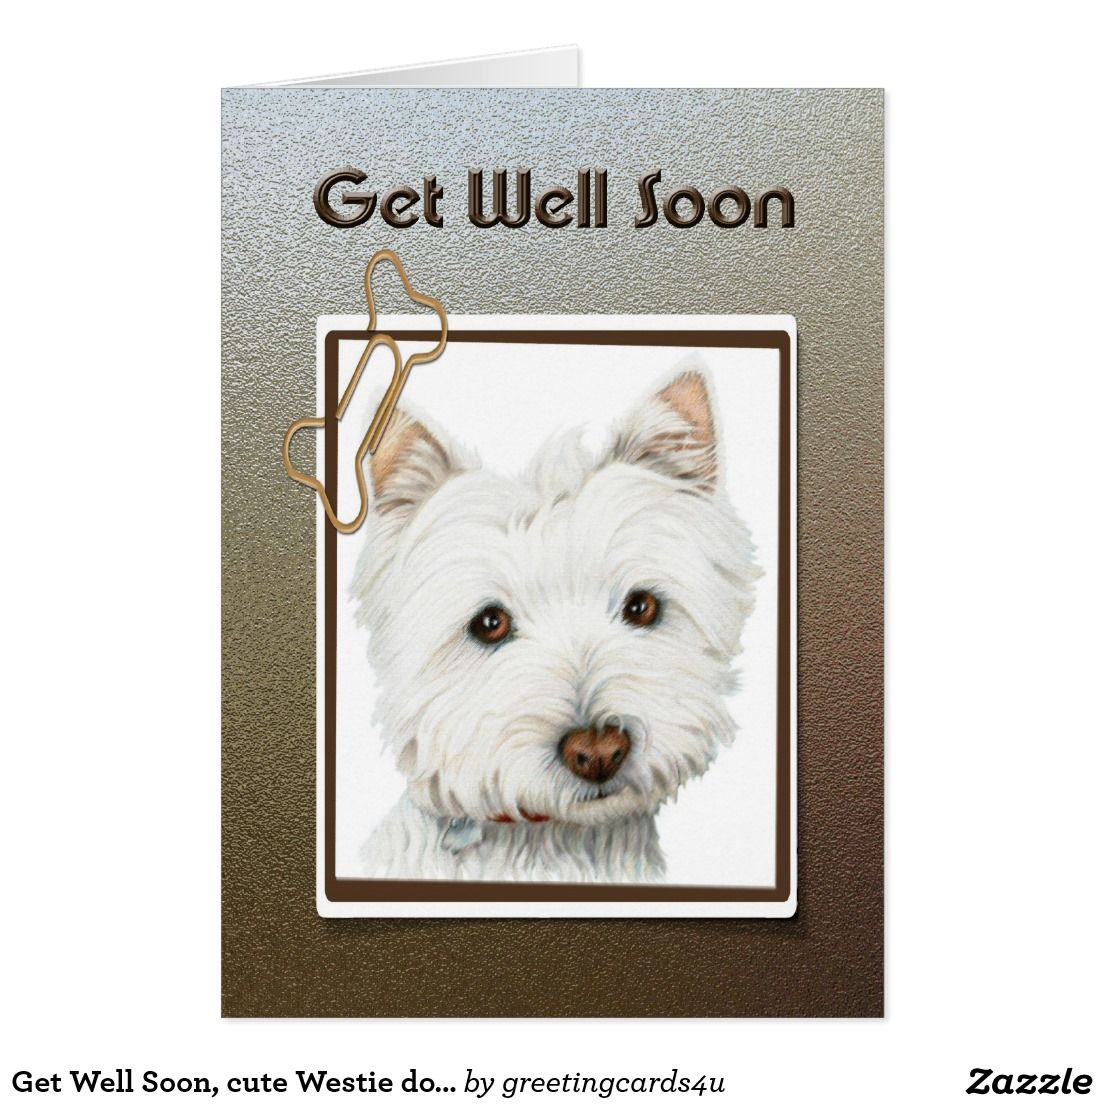 Cosmopolitan Him Get Well Soon Quotes Teachers Get Well Westie Dog Greeting Card Get Well Westie Dog Greeting Card Dog Get Well Soon Quotes